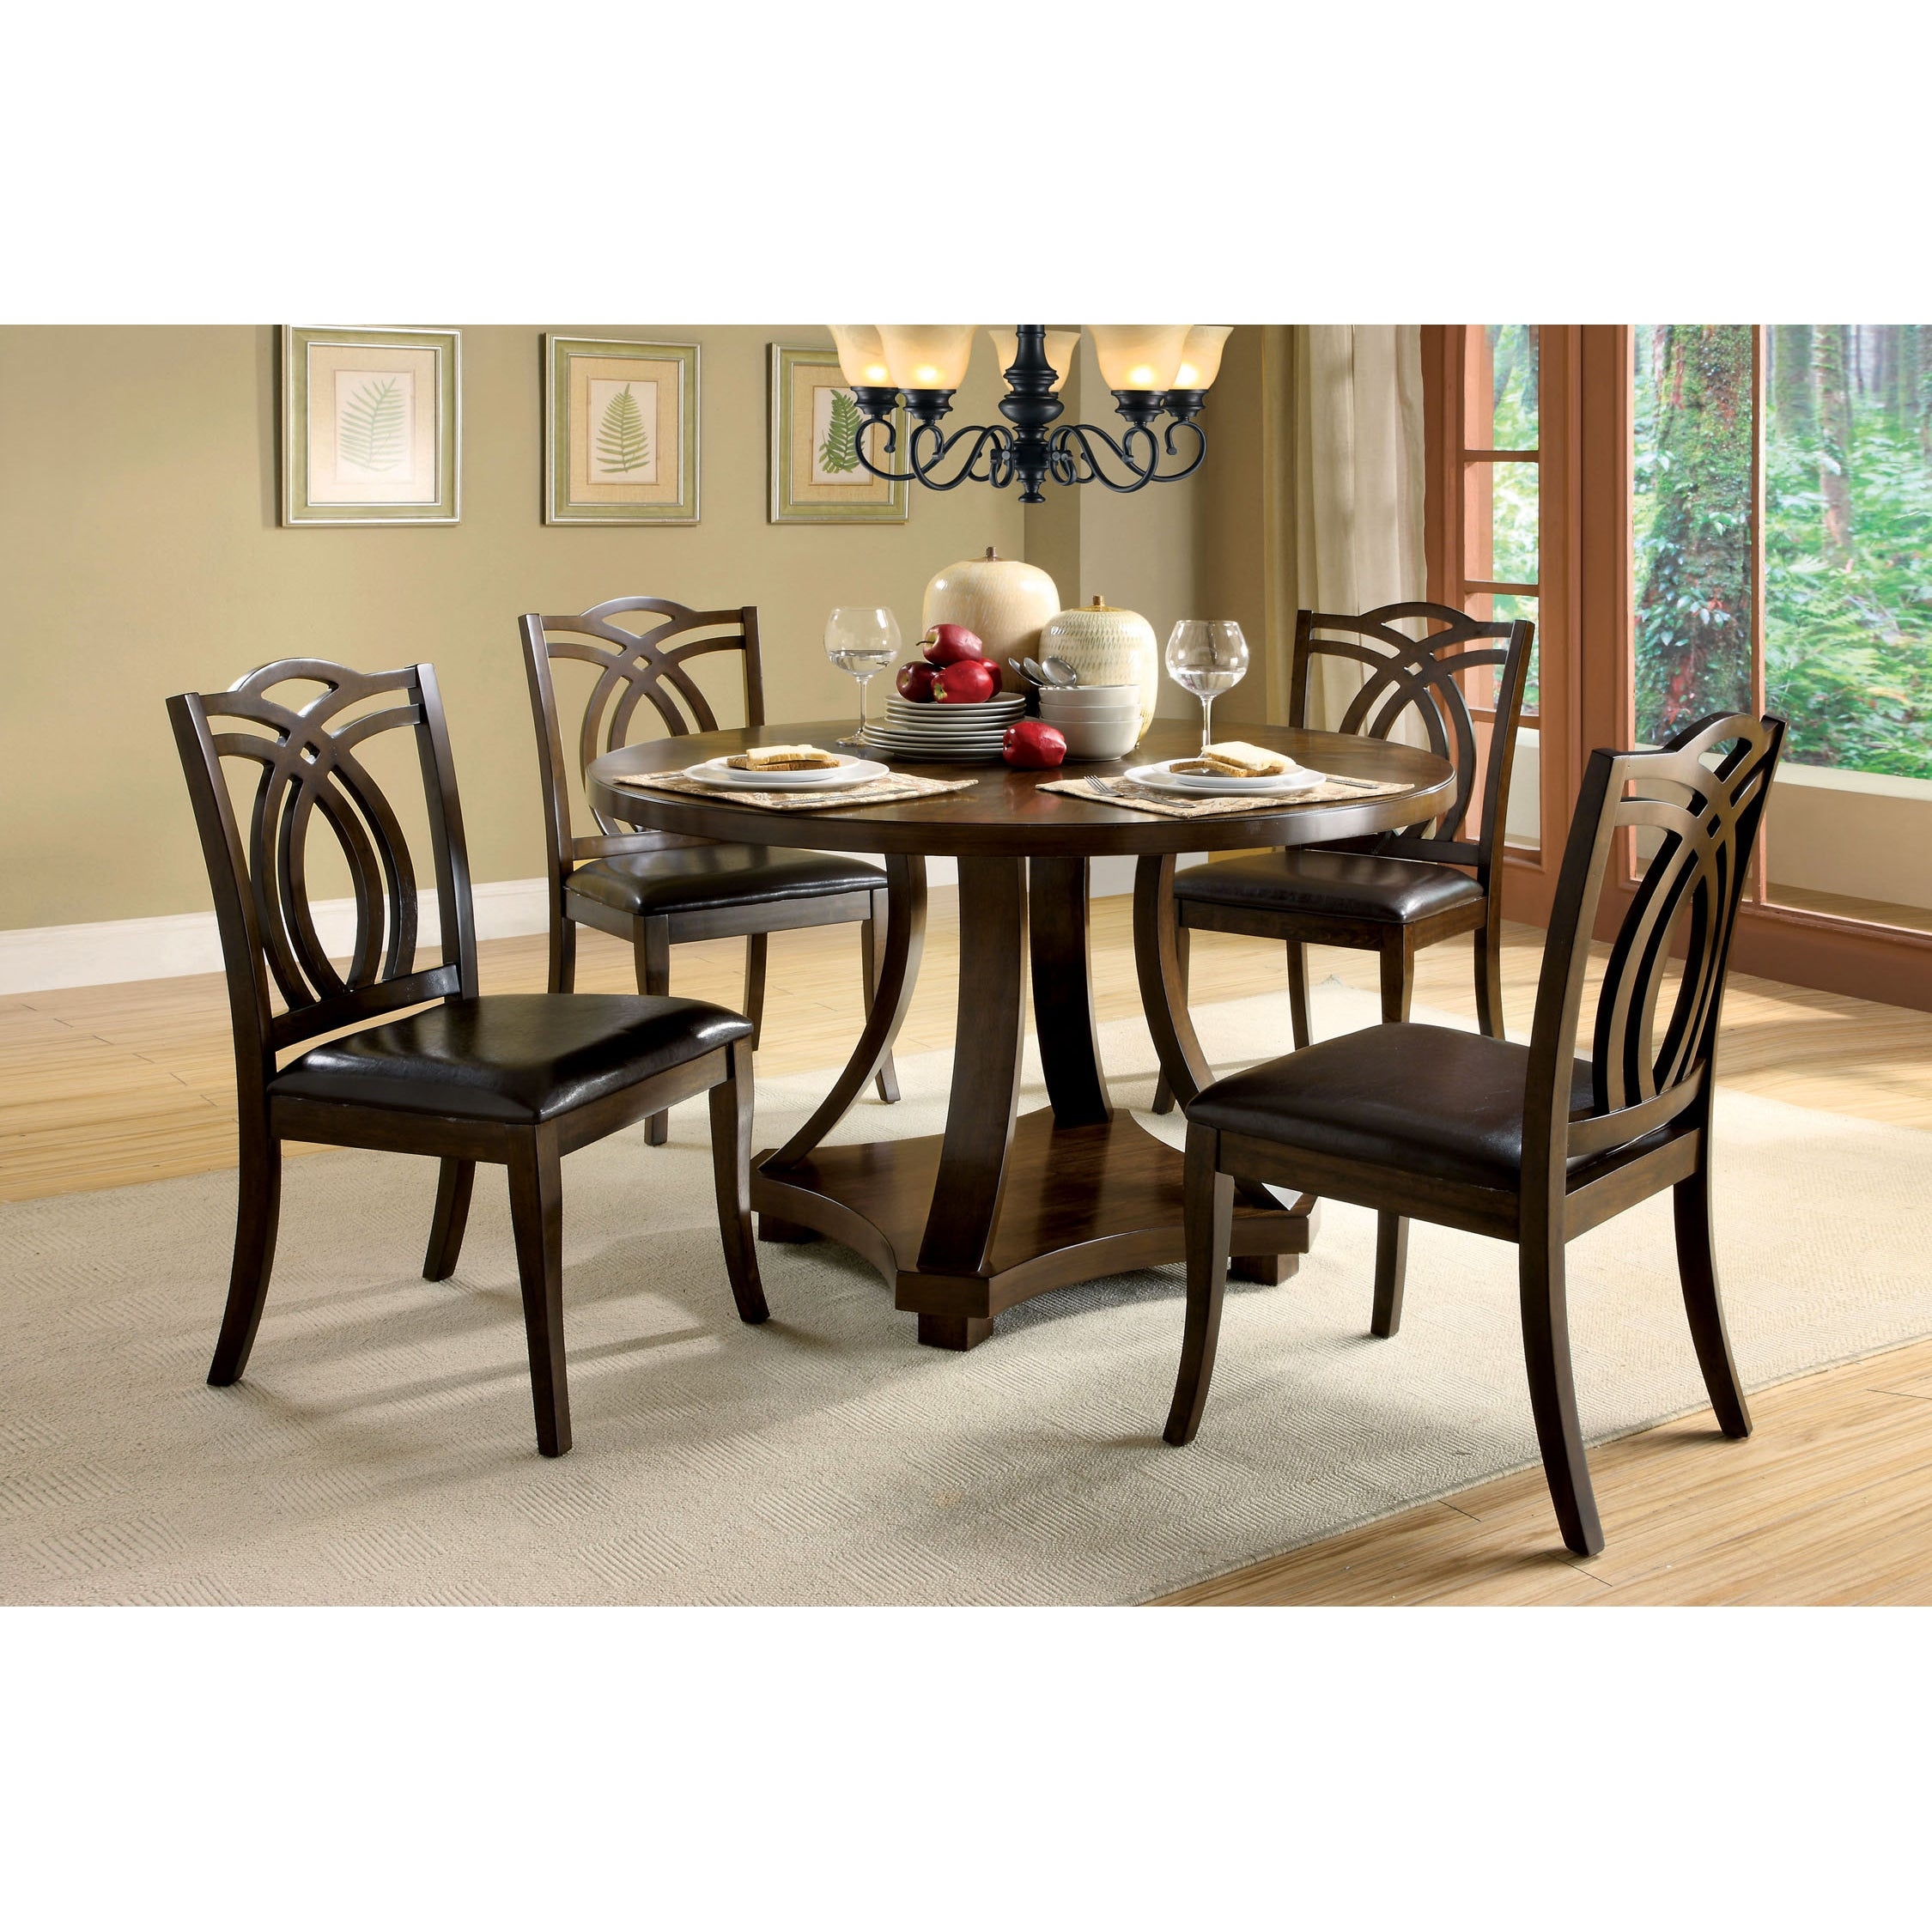 Briggs Contemporary 48 Inch Dark Walnut Dining Tablefoa – Dark Walnut For 2017 Biggs 5 Piece Counter Height Solid Wood Dining Sets (Set Of 5) (Photo 11 of 20)